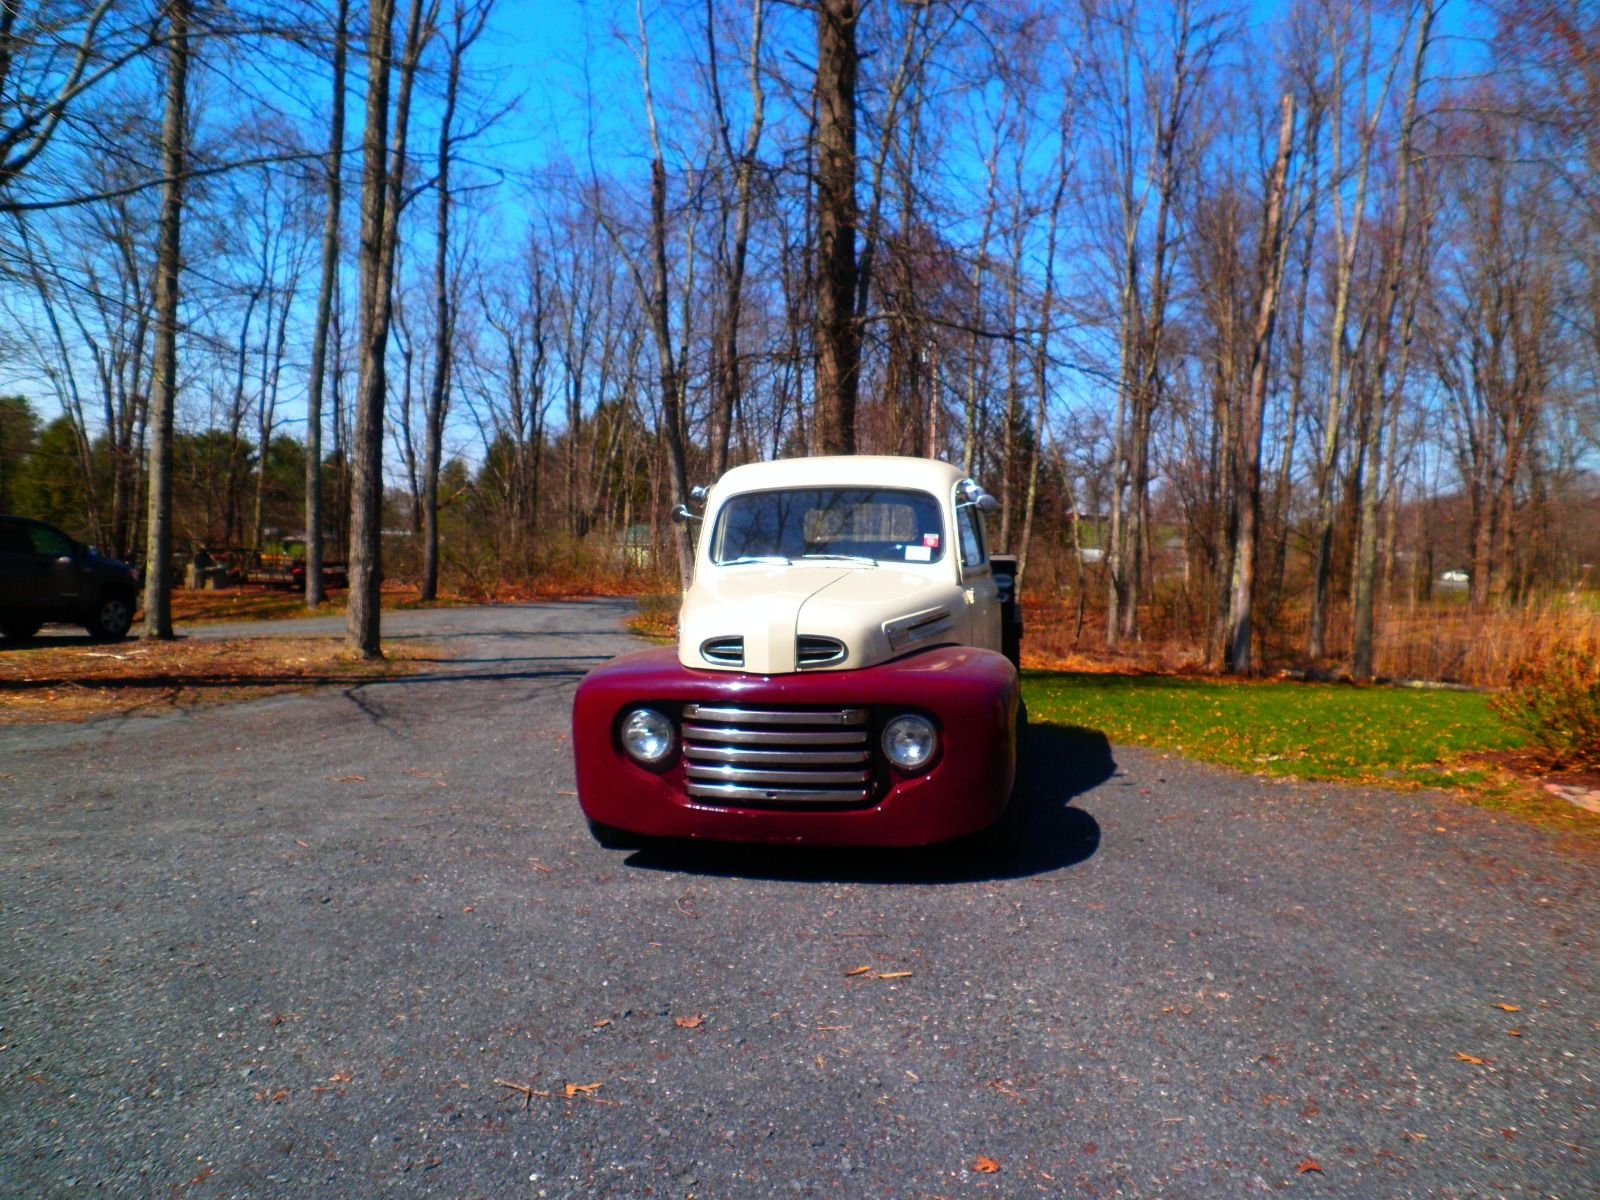 Ford Pickup Custom Hot Rod Truck For Sale on Ford C6 Automatic Transmission